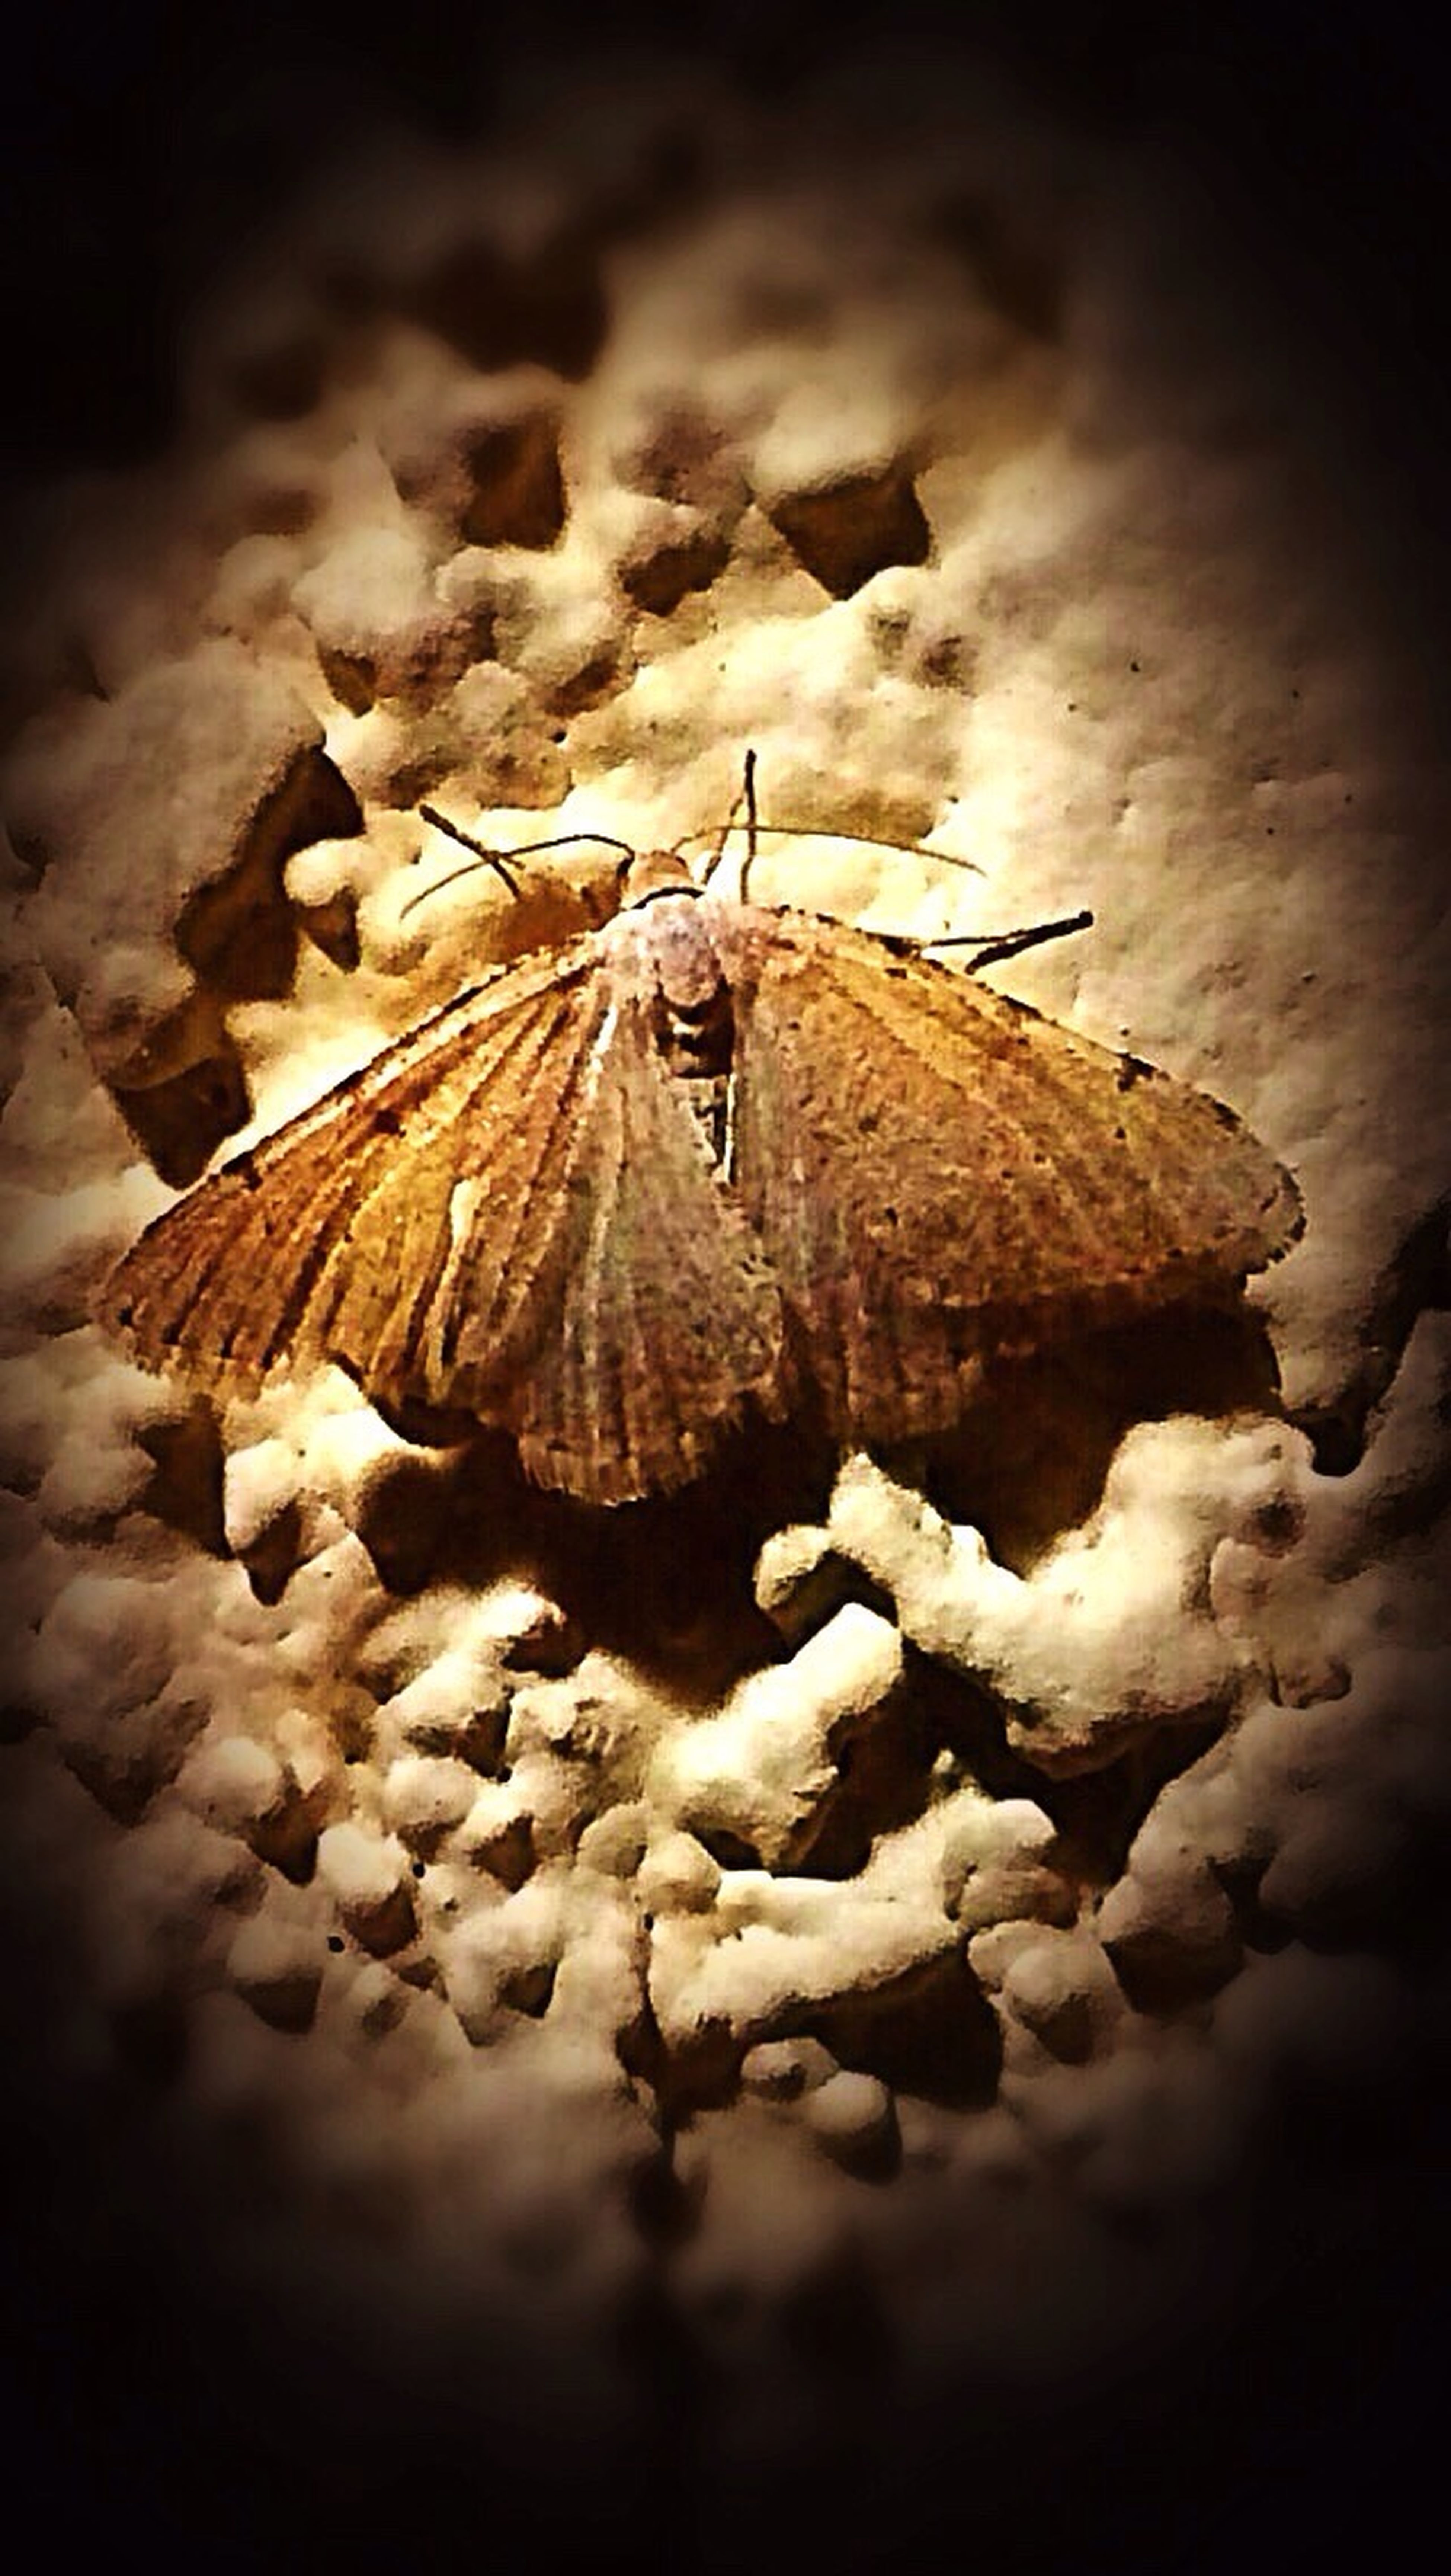 Little Brown Moth hanging Outside Work last night, loving the night Nature. Even in its smallest creatures✨... Nature Moth Beauty In Nature Night Photography Night Insects IPhone Photography One Person Alone In The Dark At Peace With Myself  Discovering Solitude And Silence Cool Night Picture Moth Close Up